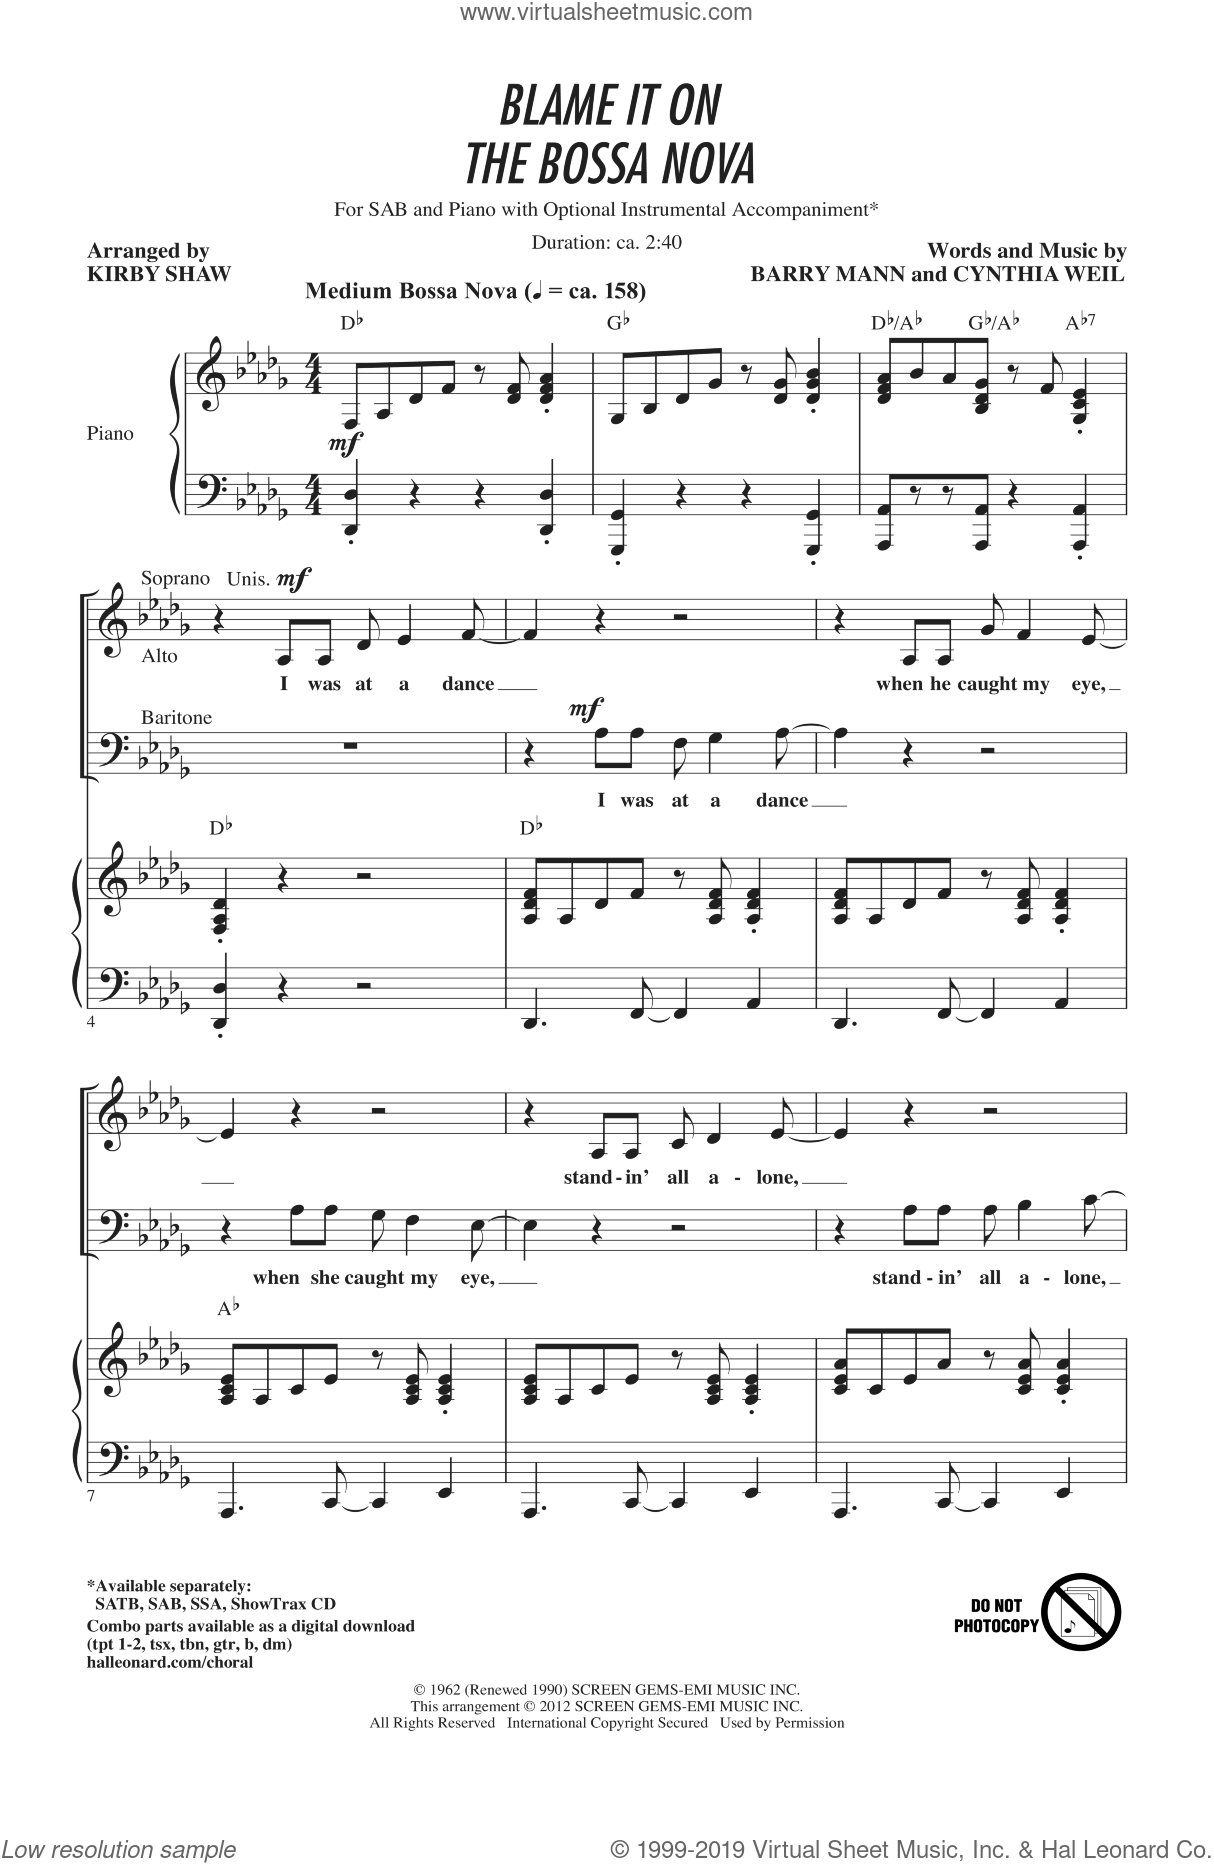 Blame It On The Bossa Nova sheet music for choir (SAB: soprano, alto, bass) by Barry Mann, Cynthia Weil, Eydie Gorme and Kirby Shaw, intermediate